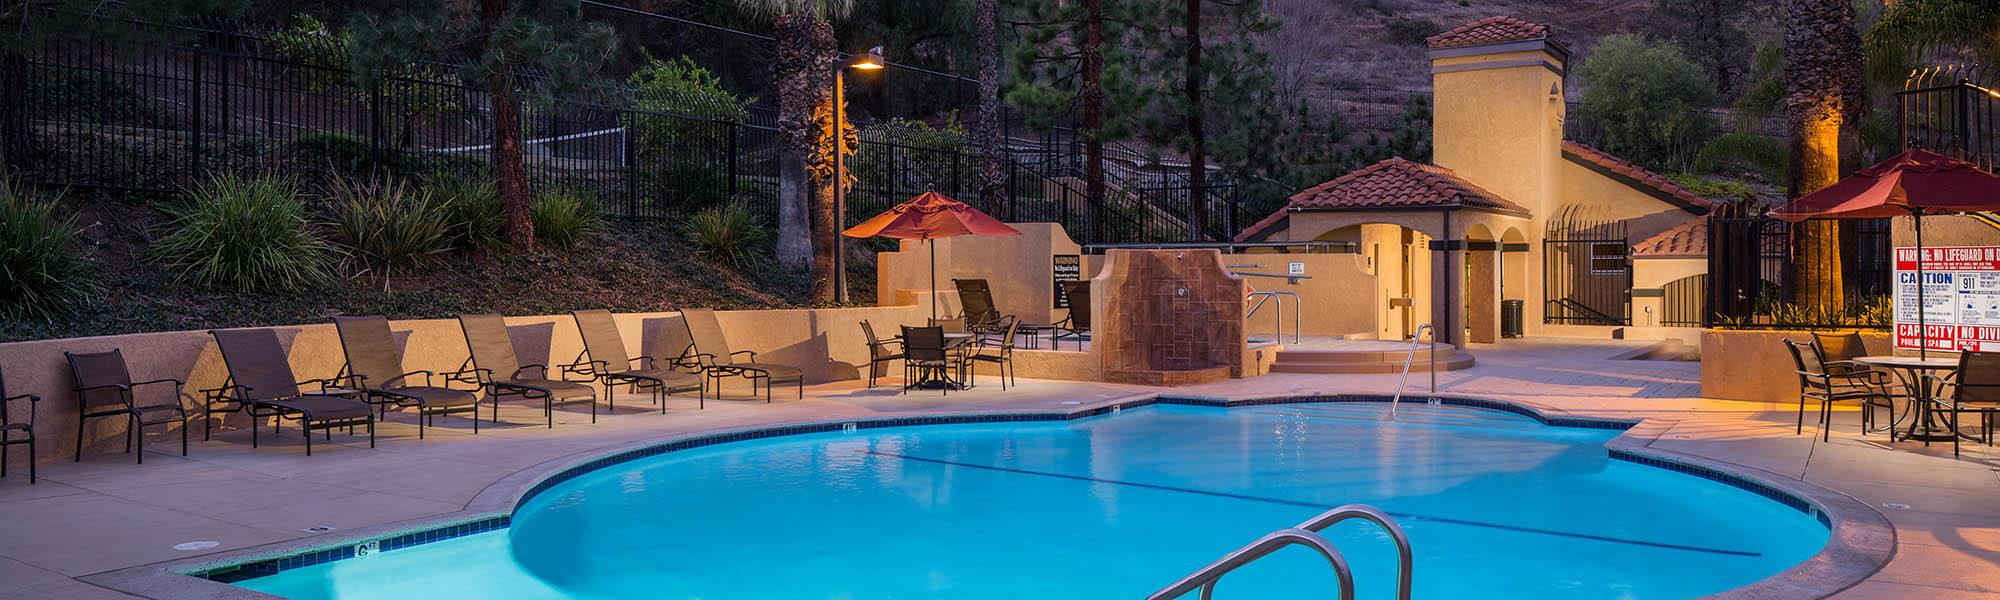 Contact Shadow Ridge Apartment Homes on our website